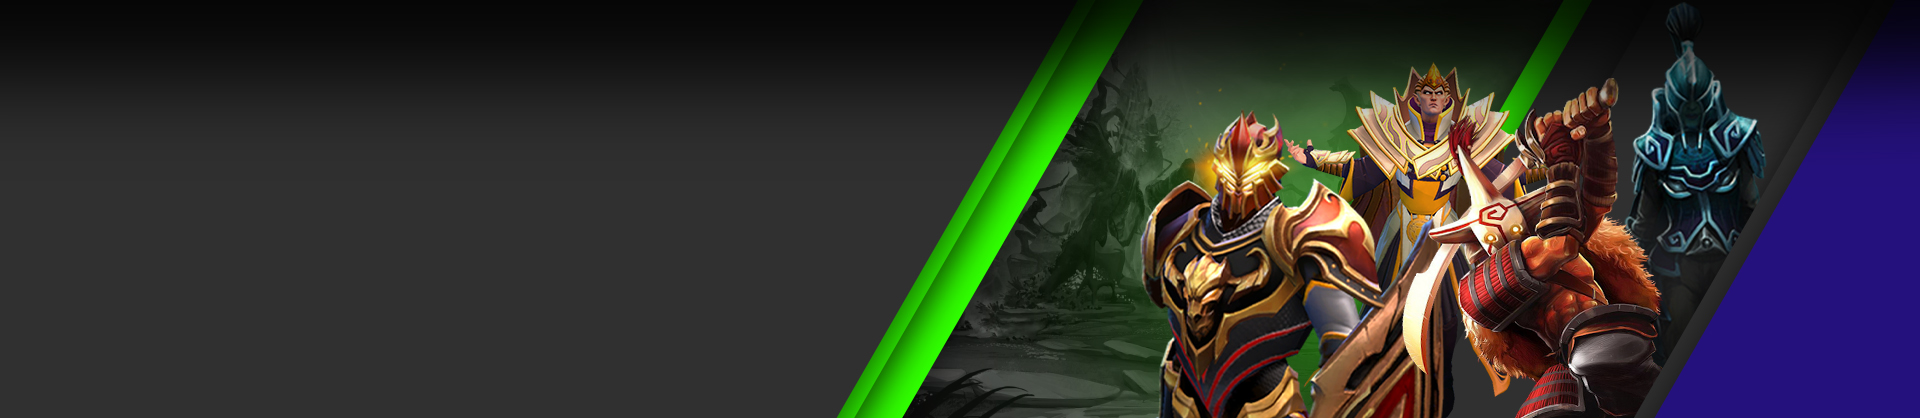 Banner Page game Esport